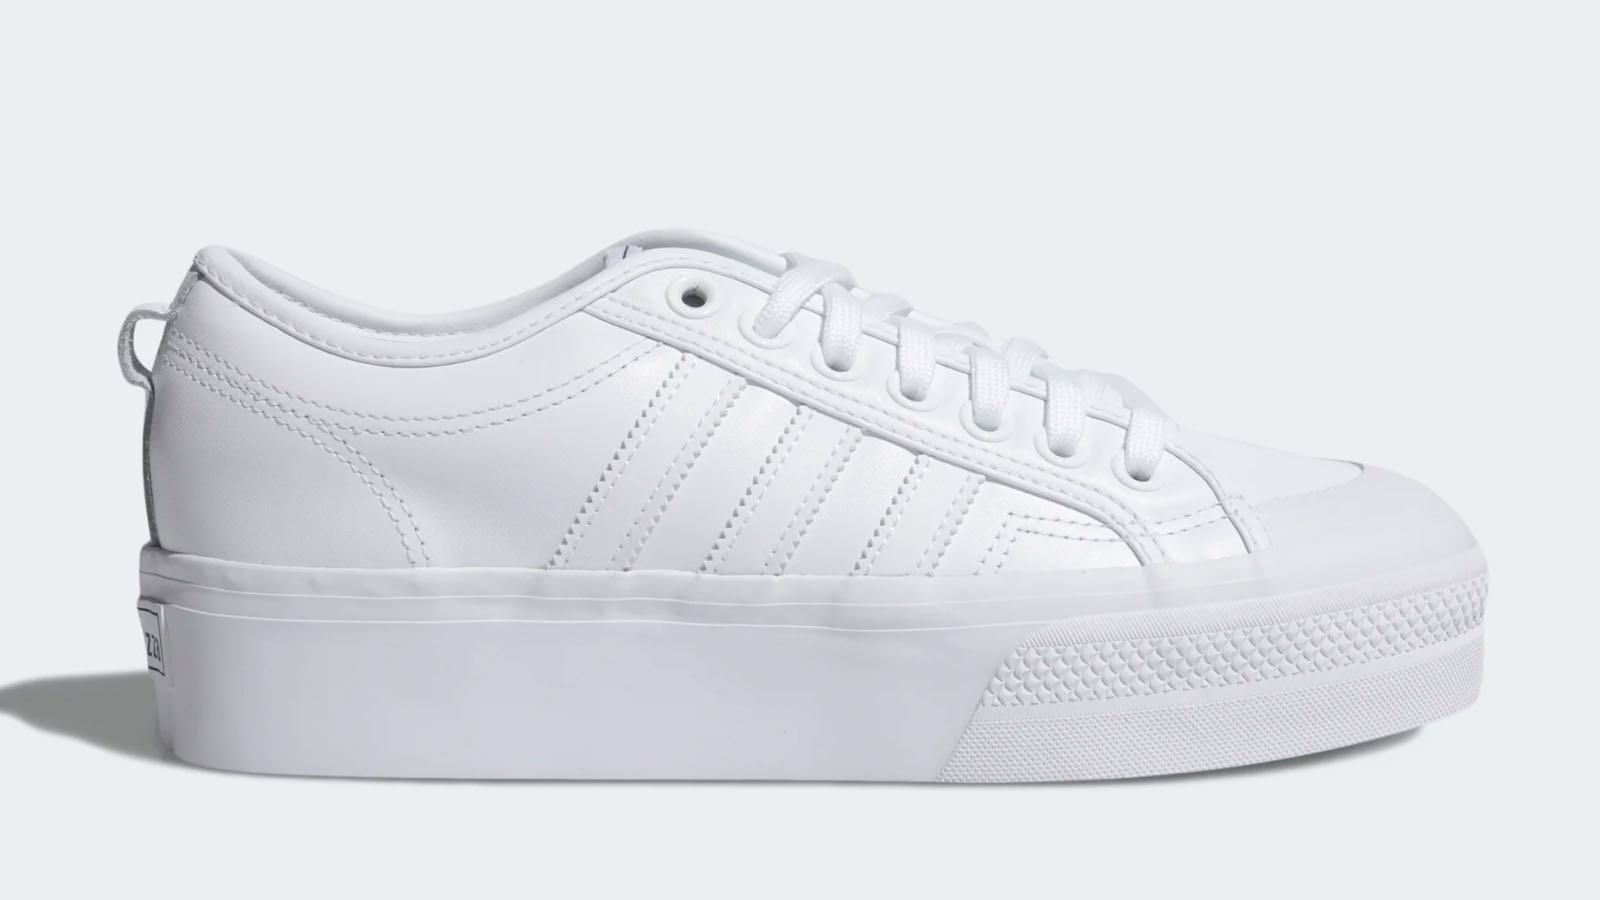 adidas Nizza platform shoes